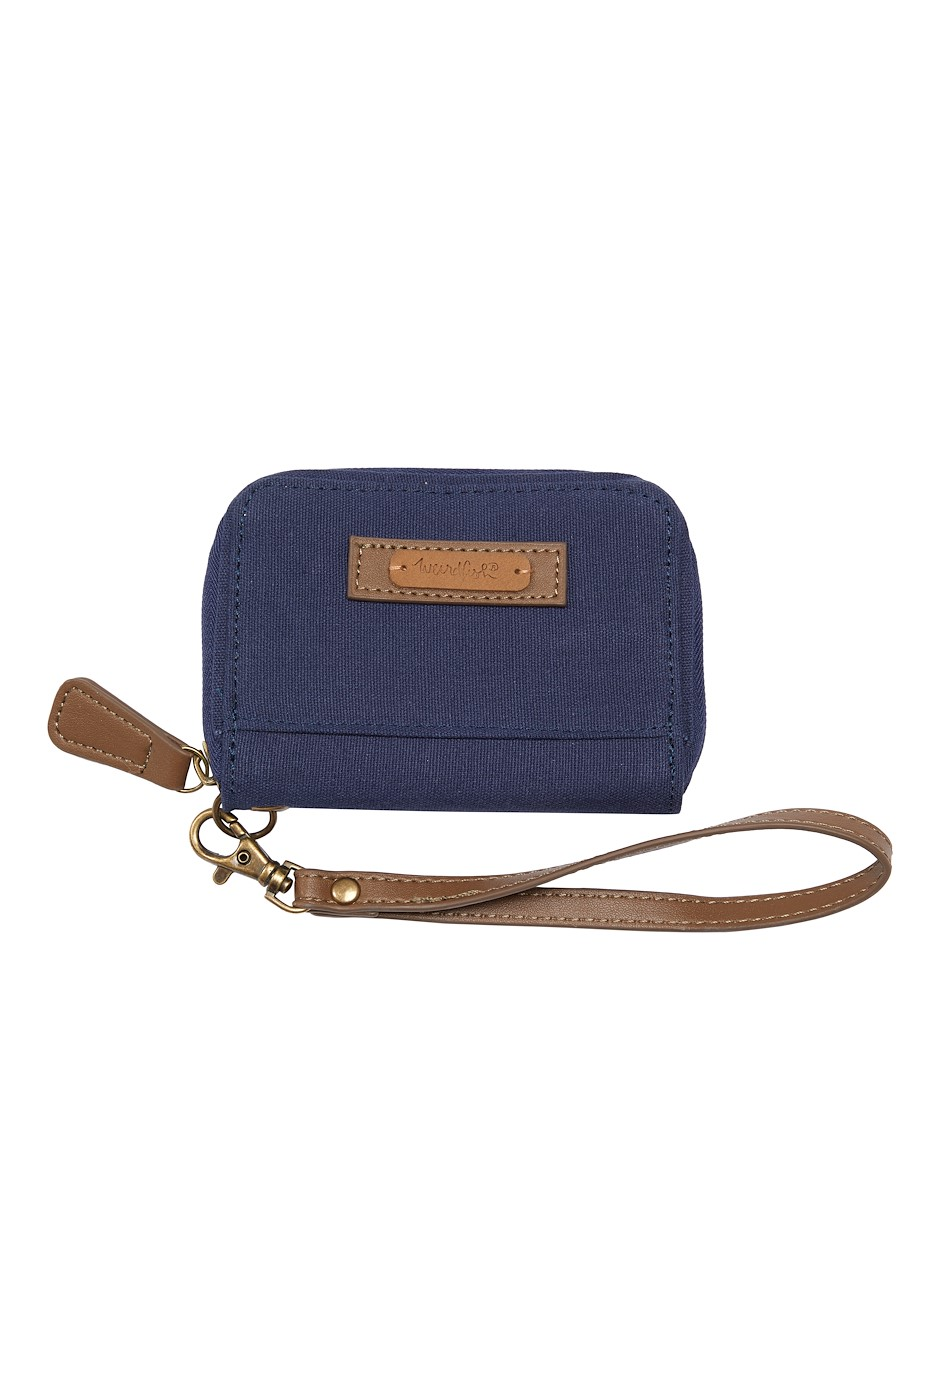 Corfe Washed Canvas Purse Navy